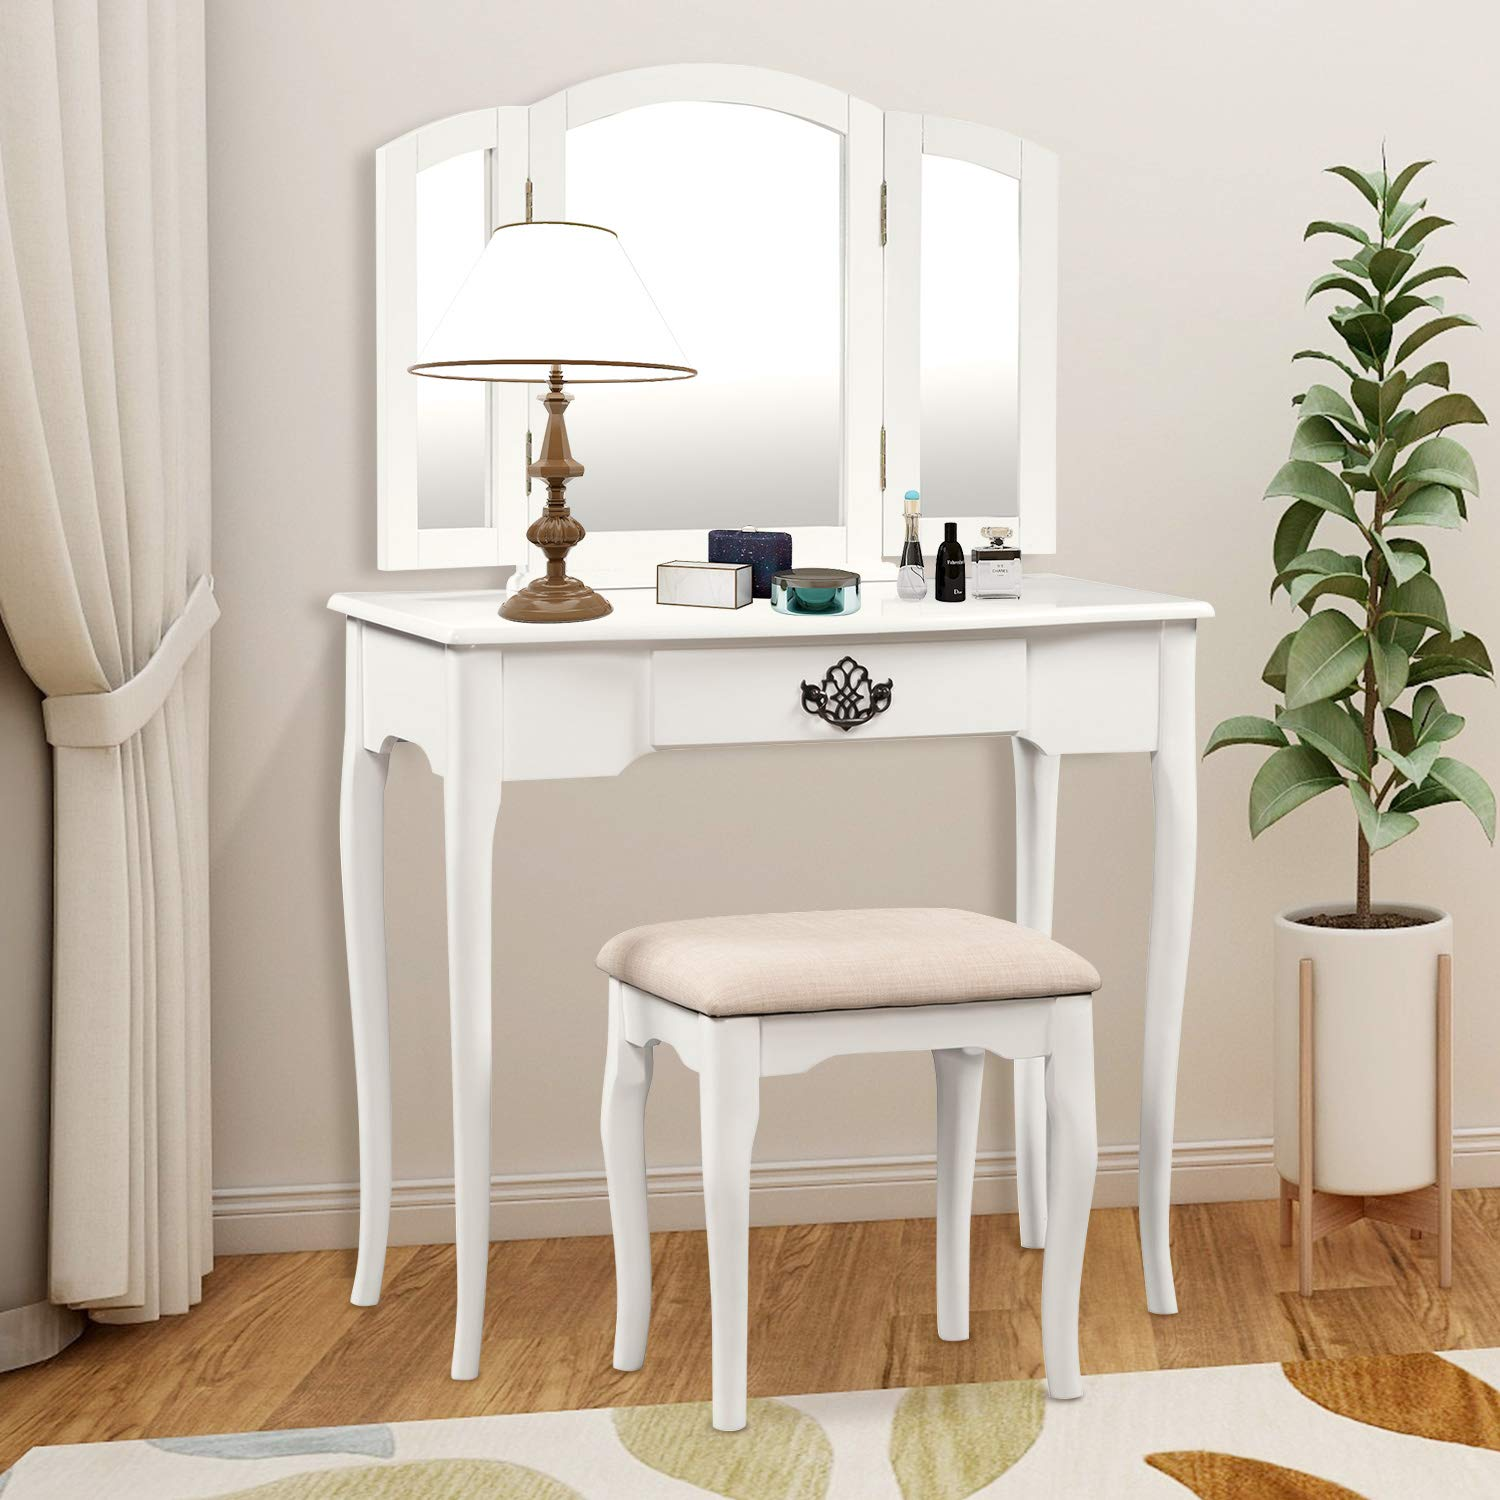 18 Beautiful Bright Kitchen Design Ideas To Serve You As: Harper&Bright Designs Vanity Table Set With Mirror And